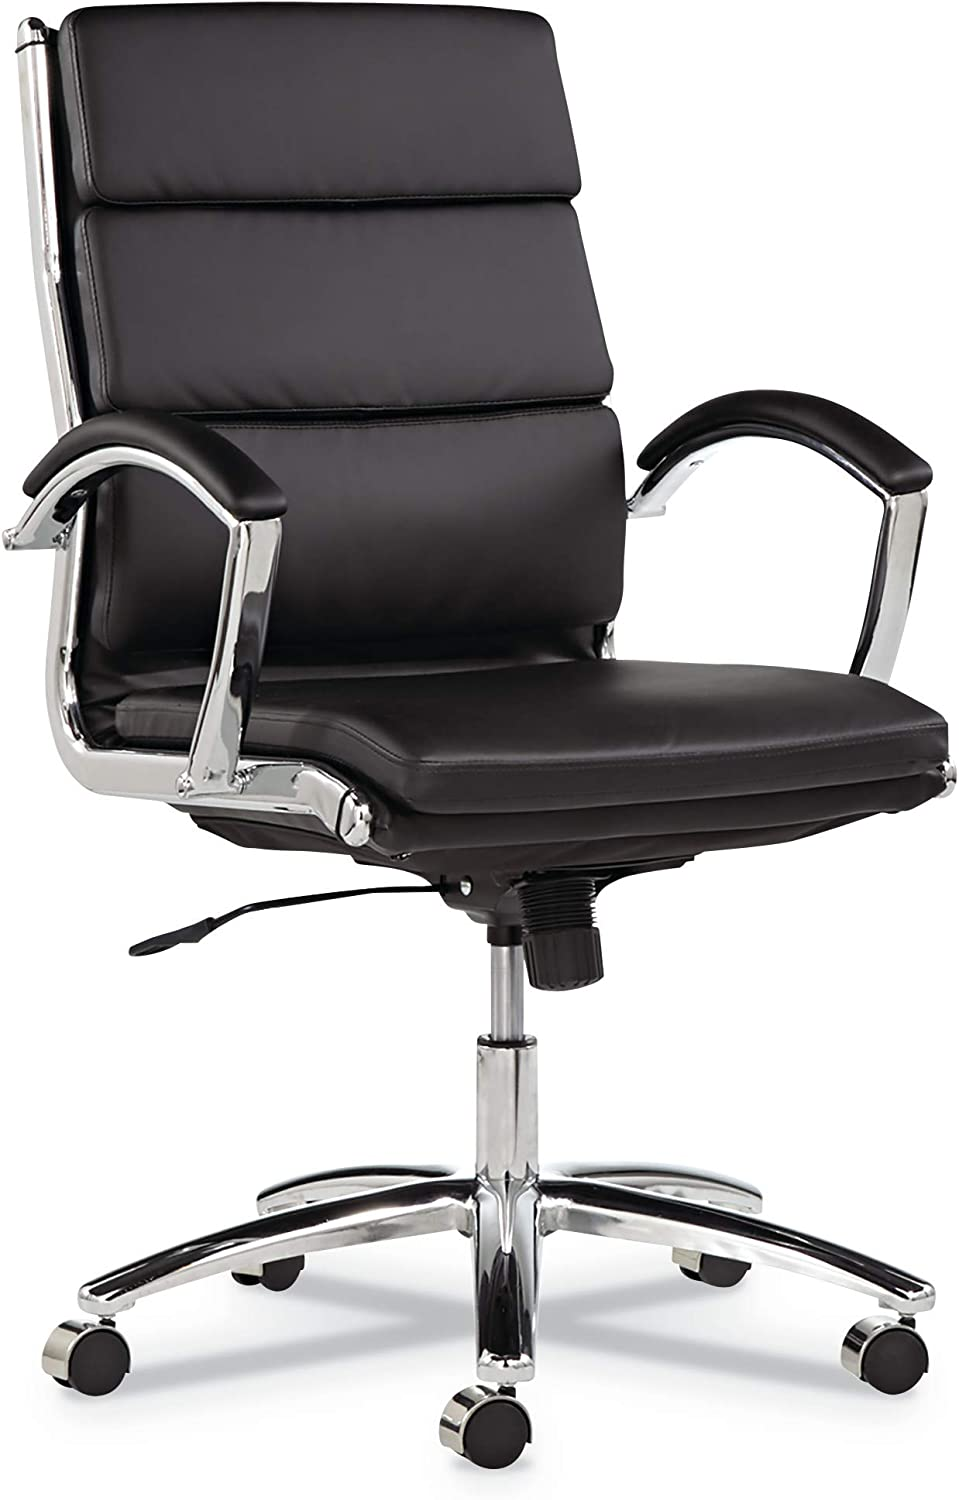 Alera ALENR4219 Neratoli Series Mid-Back Swivel/Tilt Chair, Black Leather, Chrome Frame